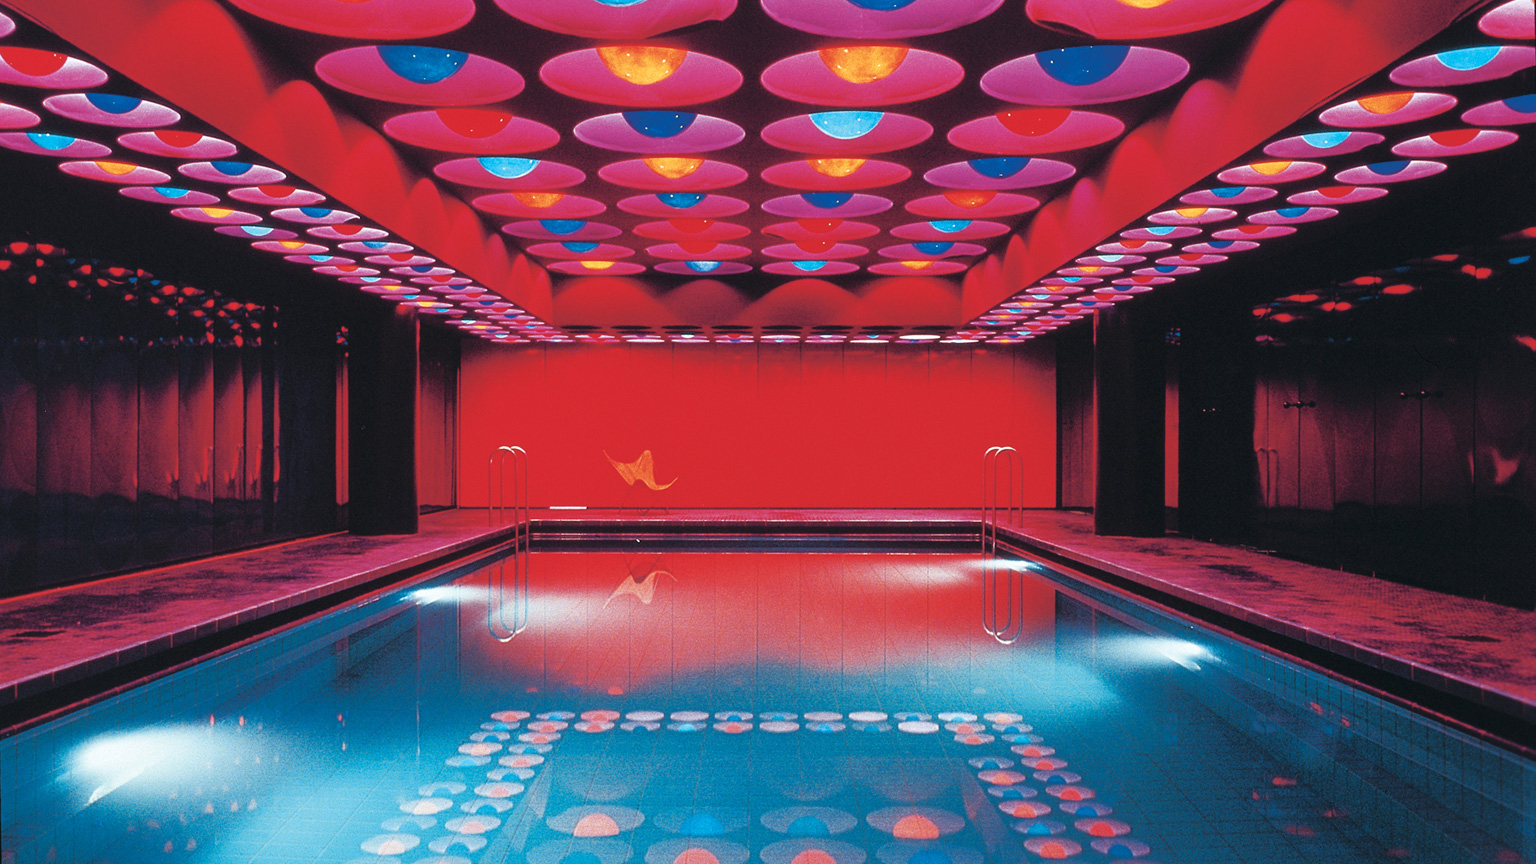 Verner Panton, Swimming Pool (1969)